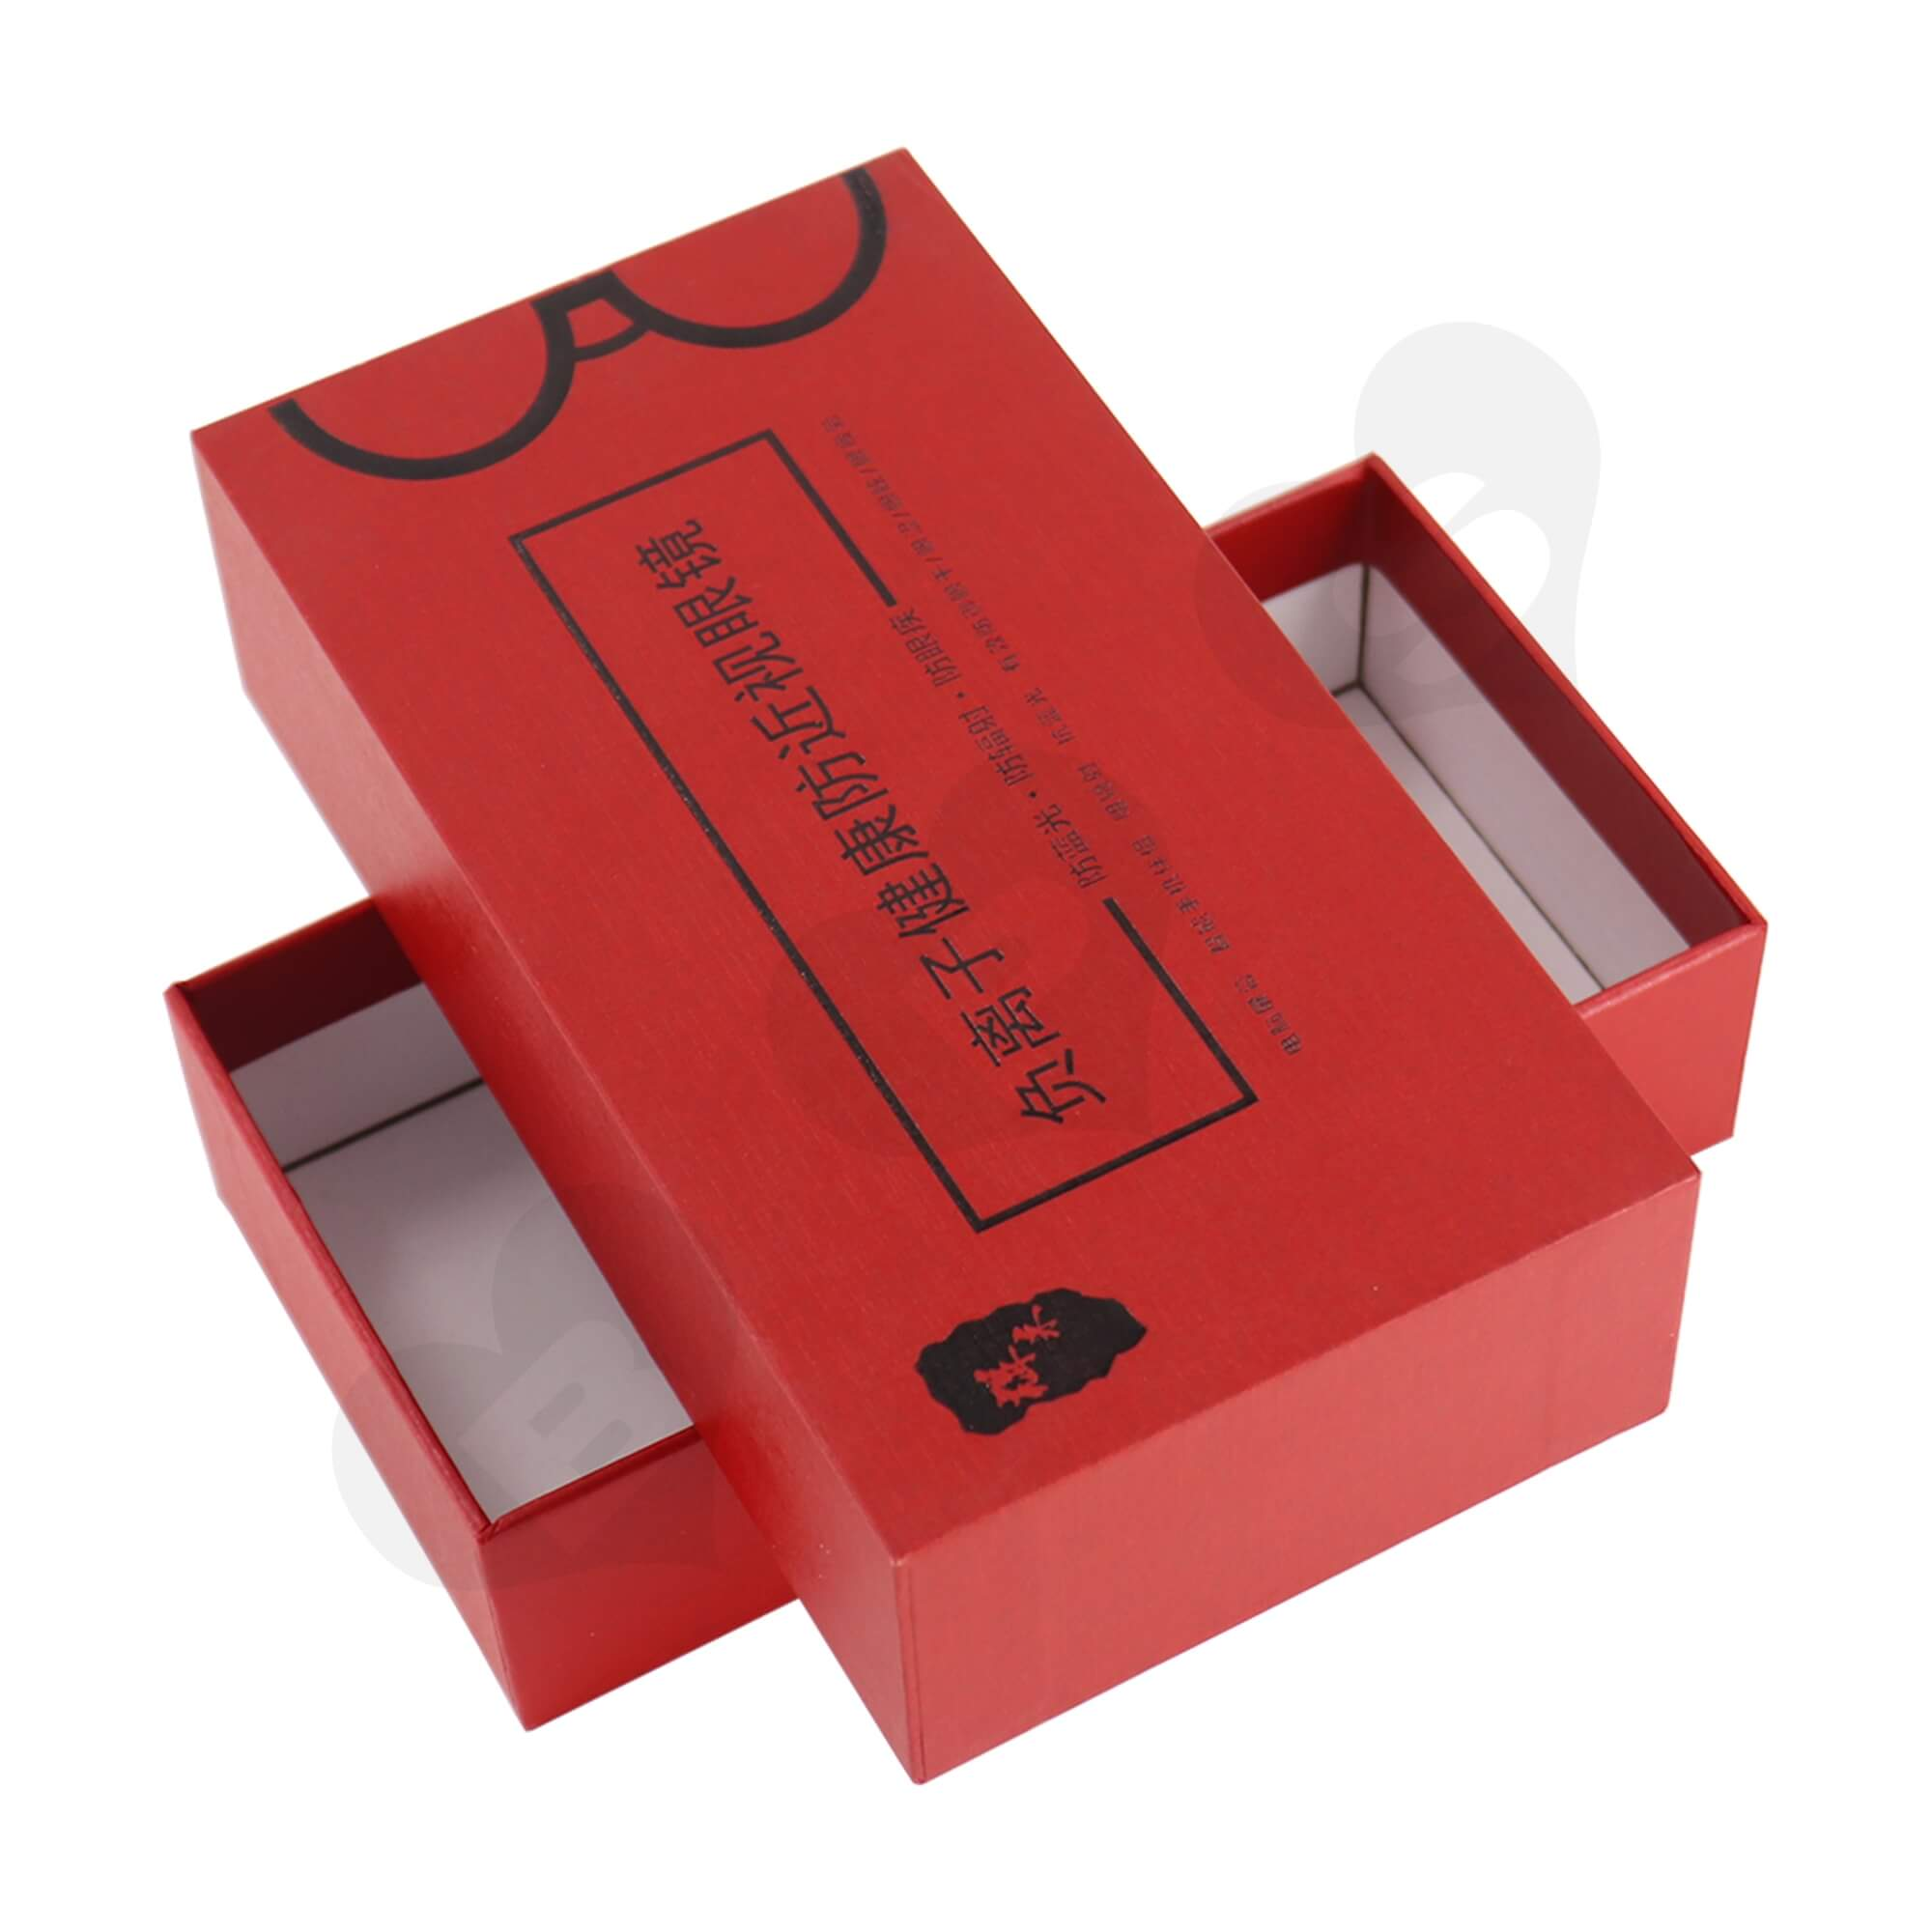 Cardboard Foil Stamping Rigid Set-Up Box For Packing Anti-Myopia Glasses Side View Four